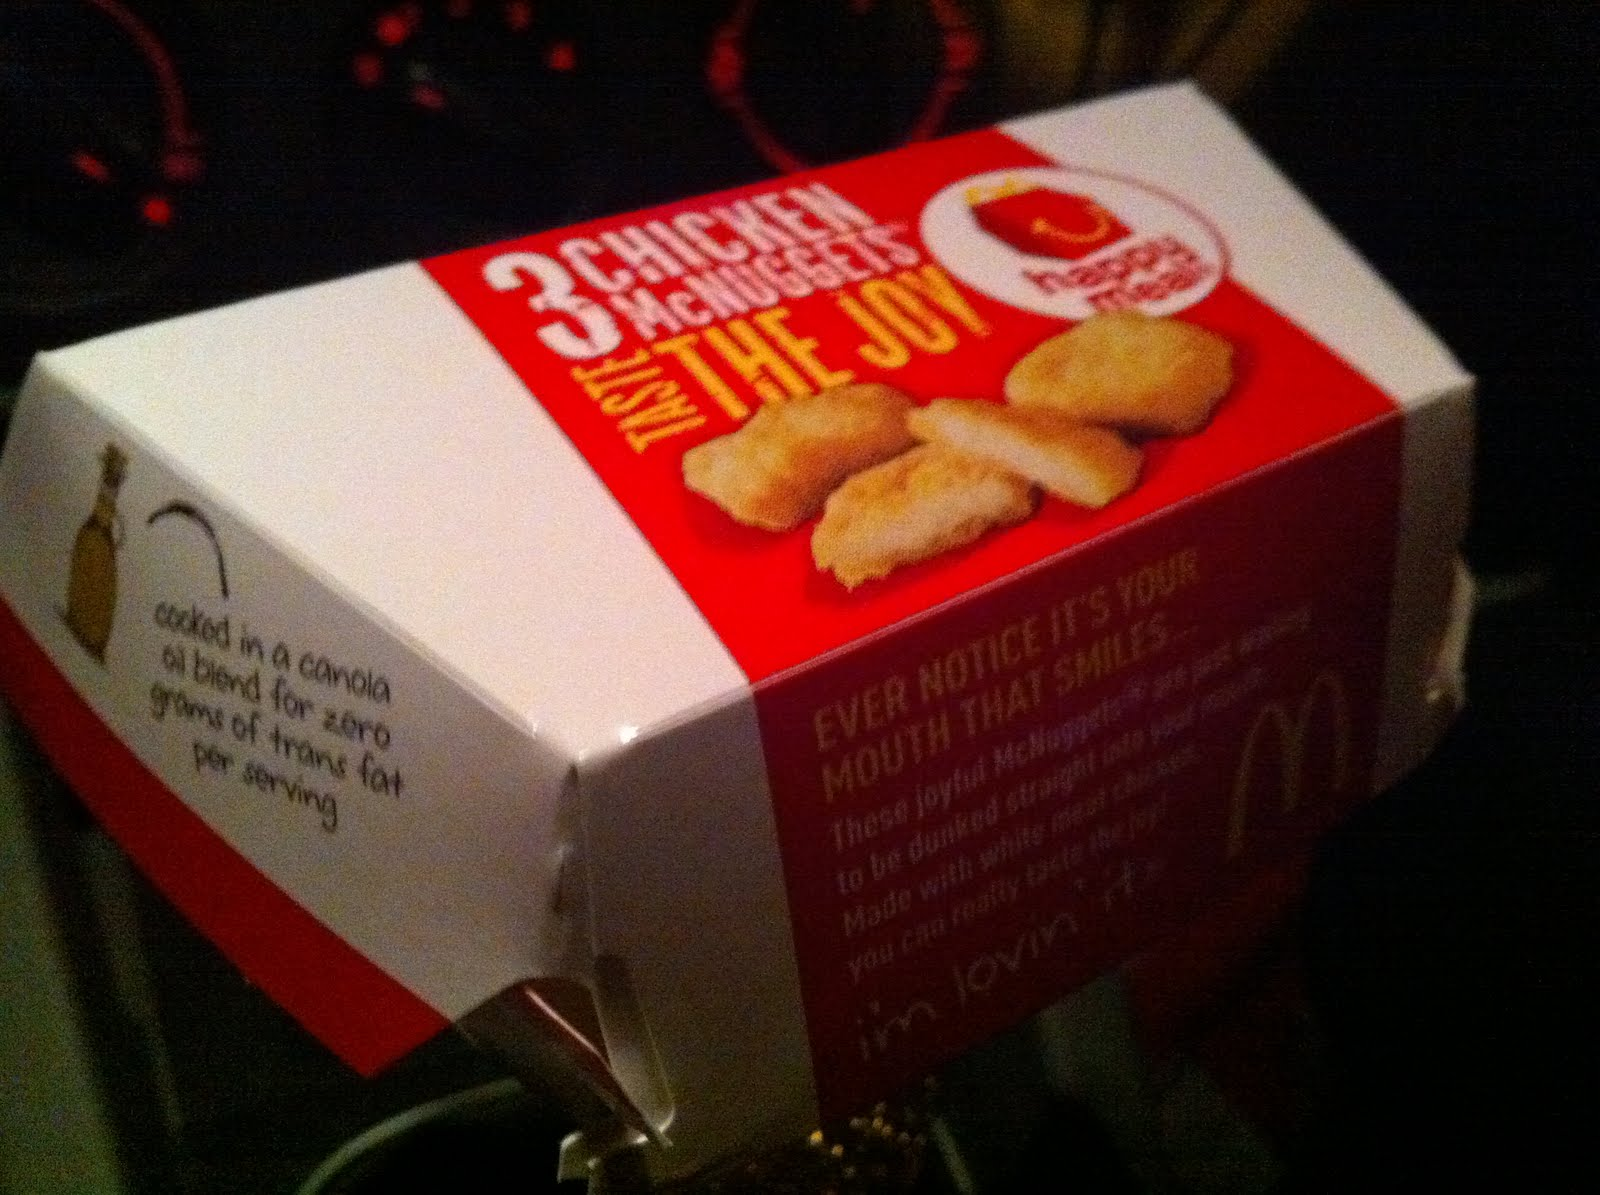 Chicken Nuggets Mcdonalds Box